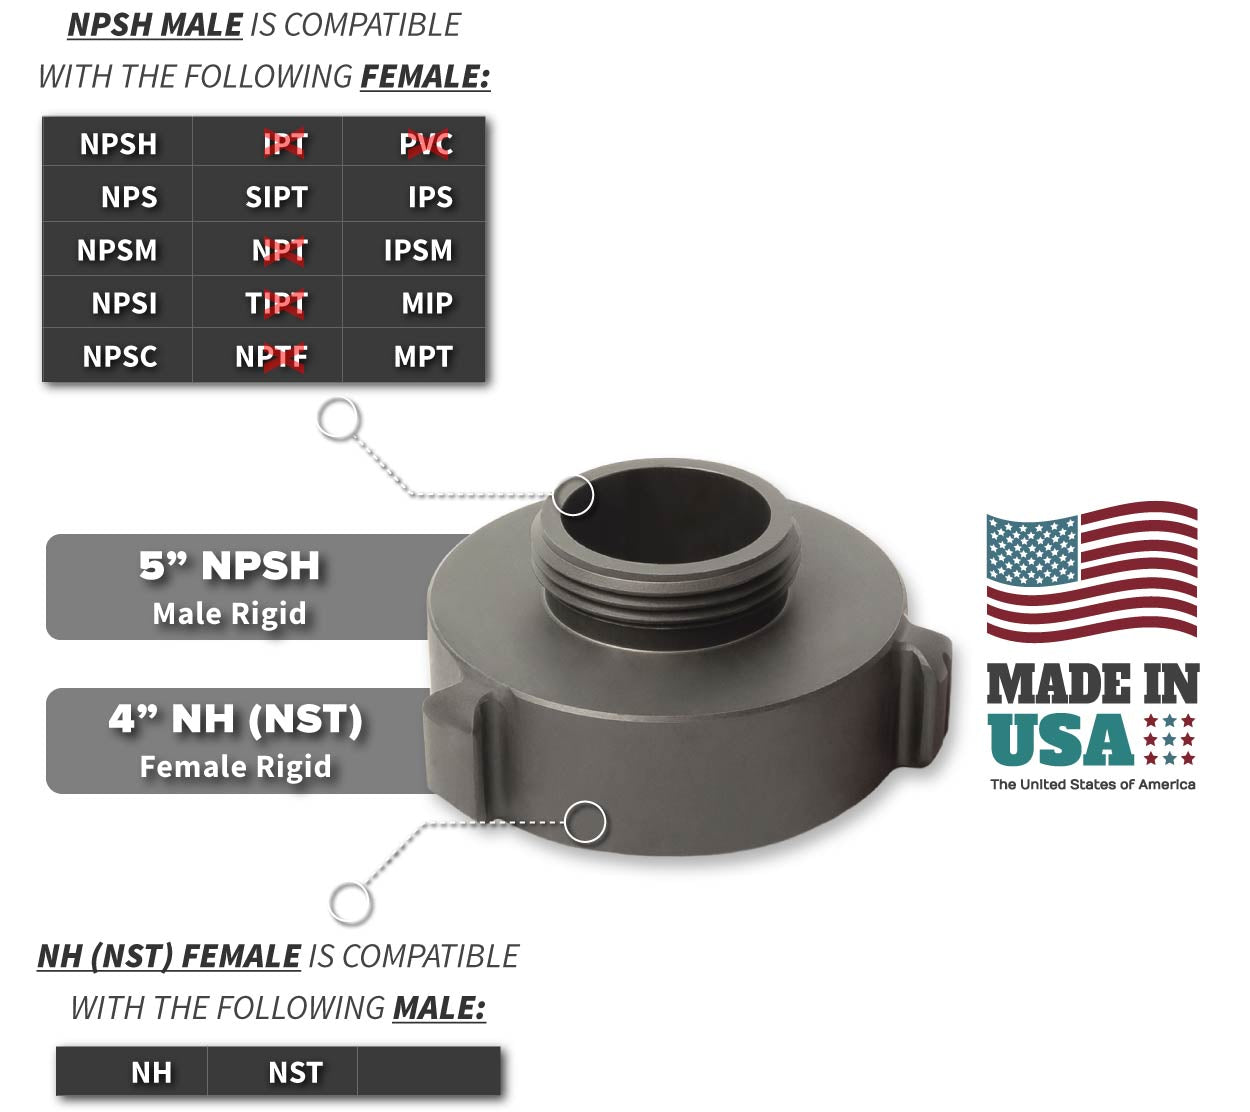 4 Inch NH-NST Female x 5 Inch NPSH Male Compatibility Thread Chart